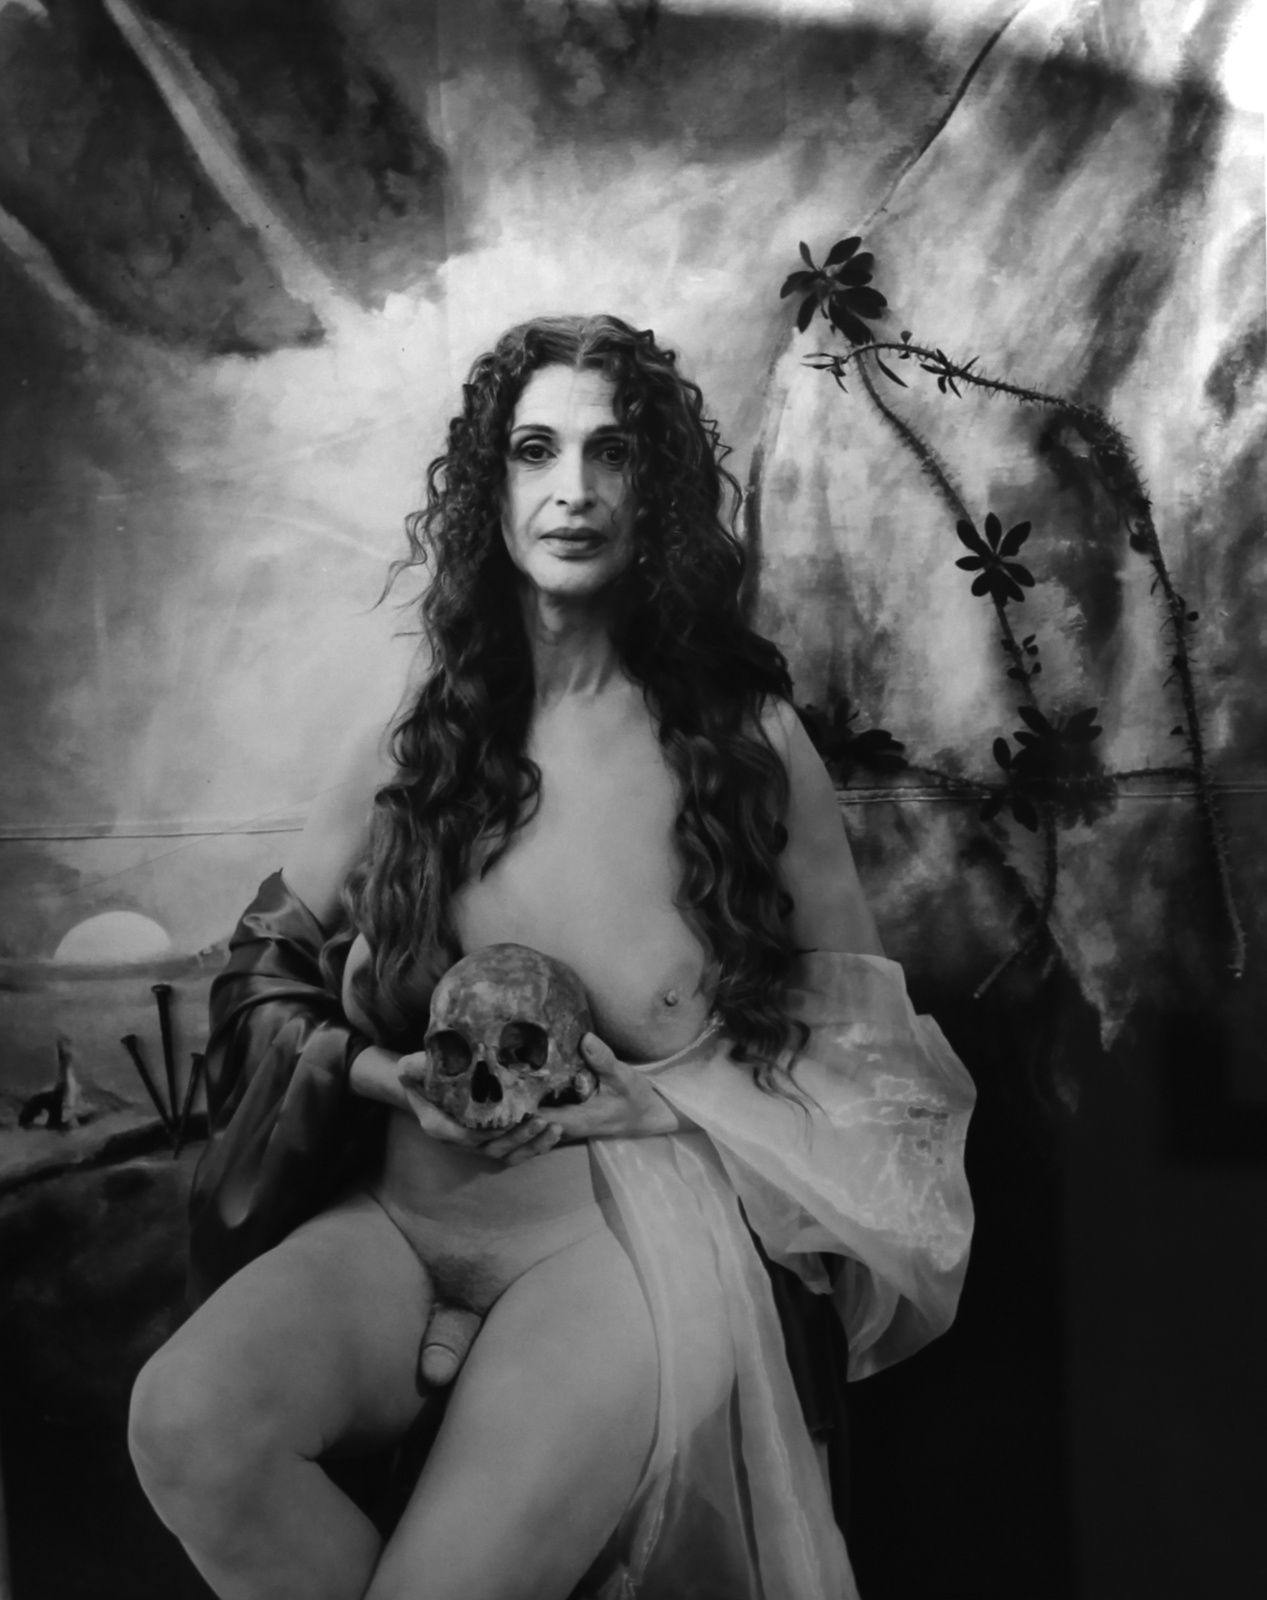 Expo Photographie Contemporaine: Joel Peter WITKIN &quot&#x3B;The Soul Has No Gender&quot&#x3B;